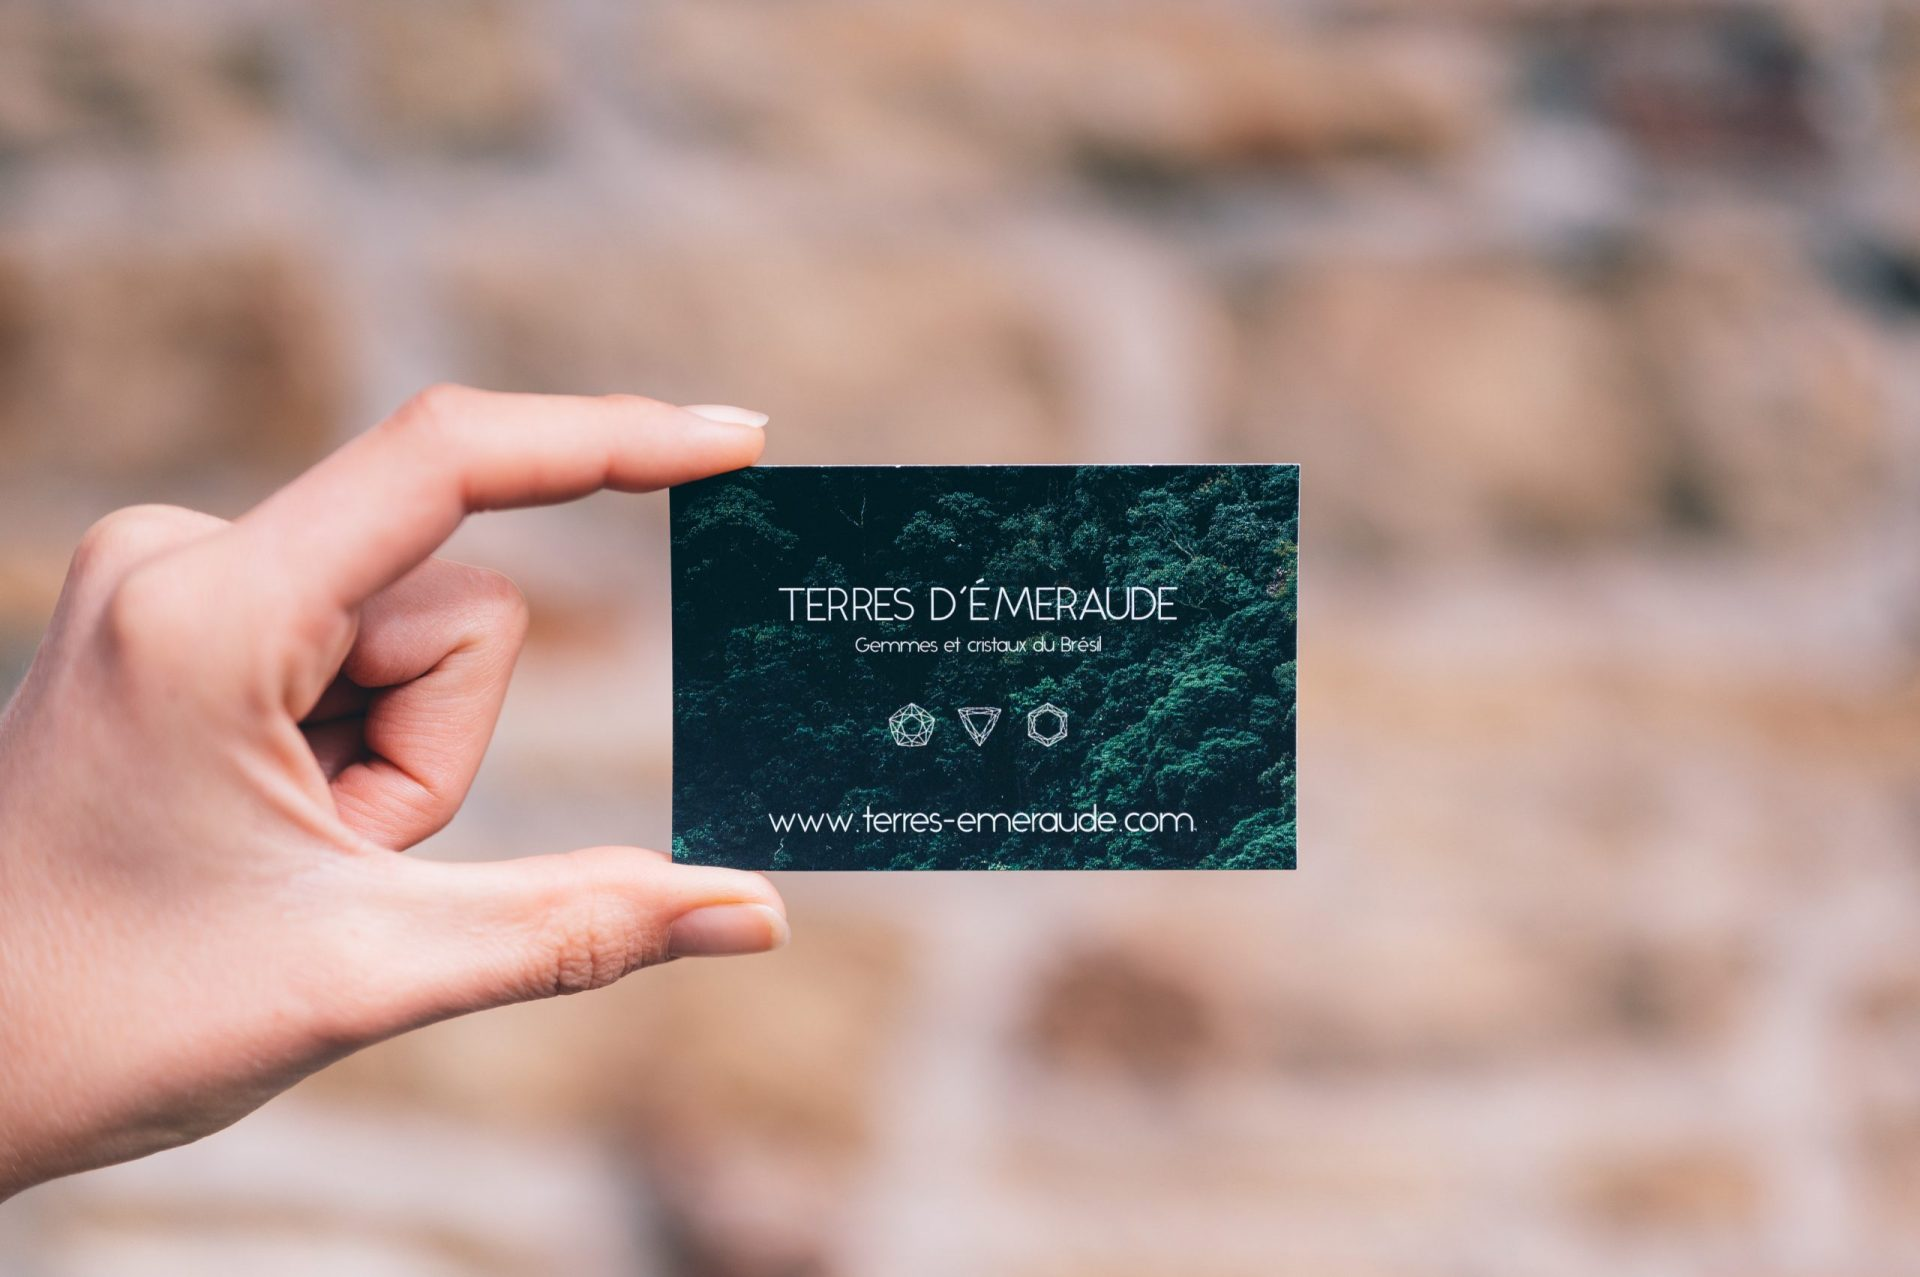 Business cards: Representatives of your business